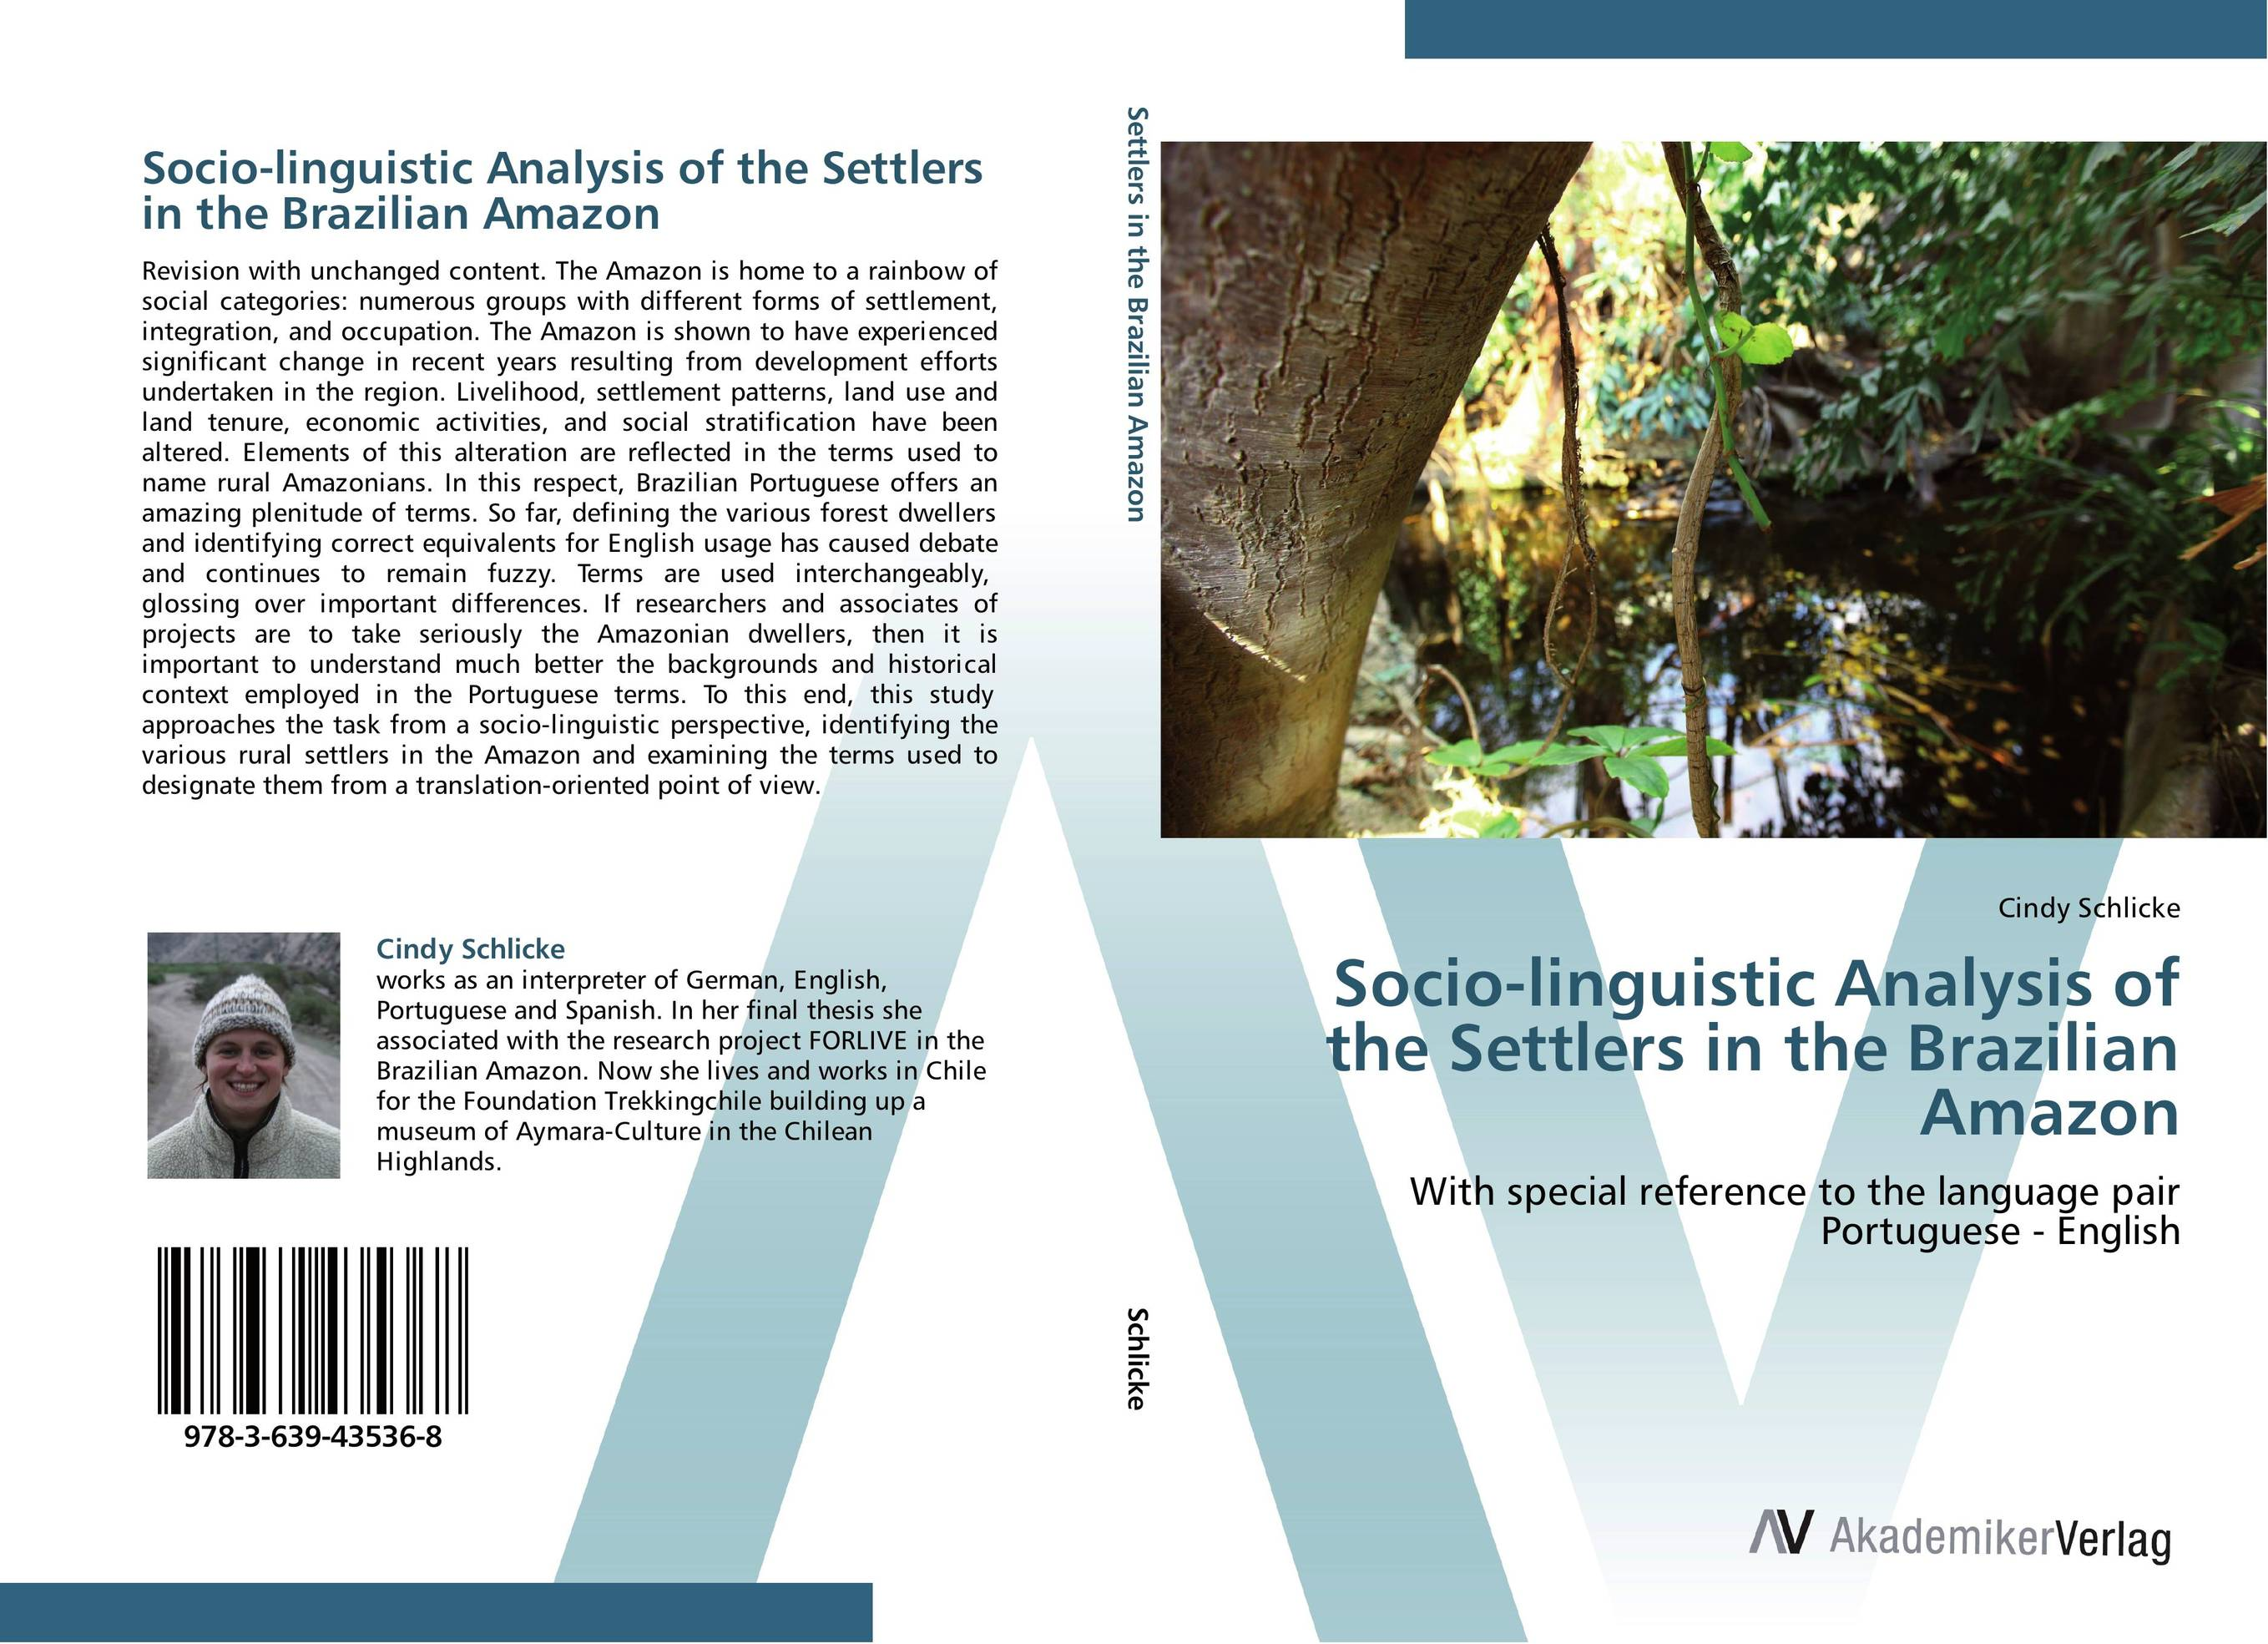 Socio-linguistic Analysis of the Settlers in the Brazilian Amazon the internal load analysis in soccer